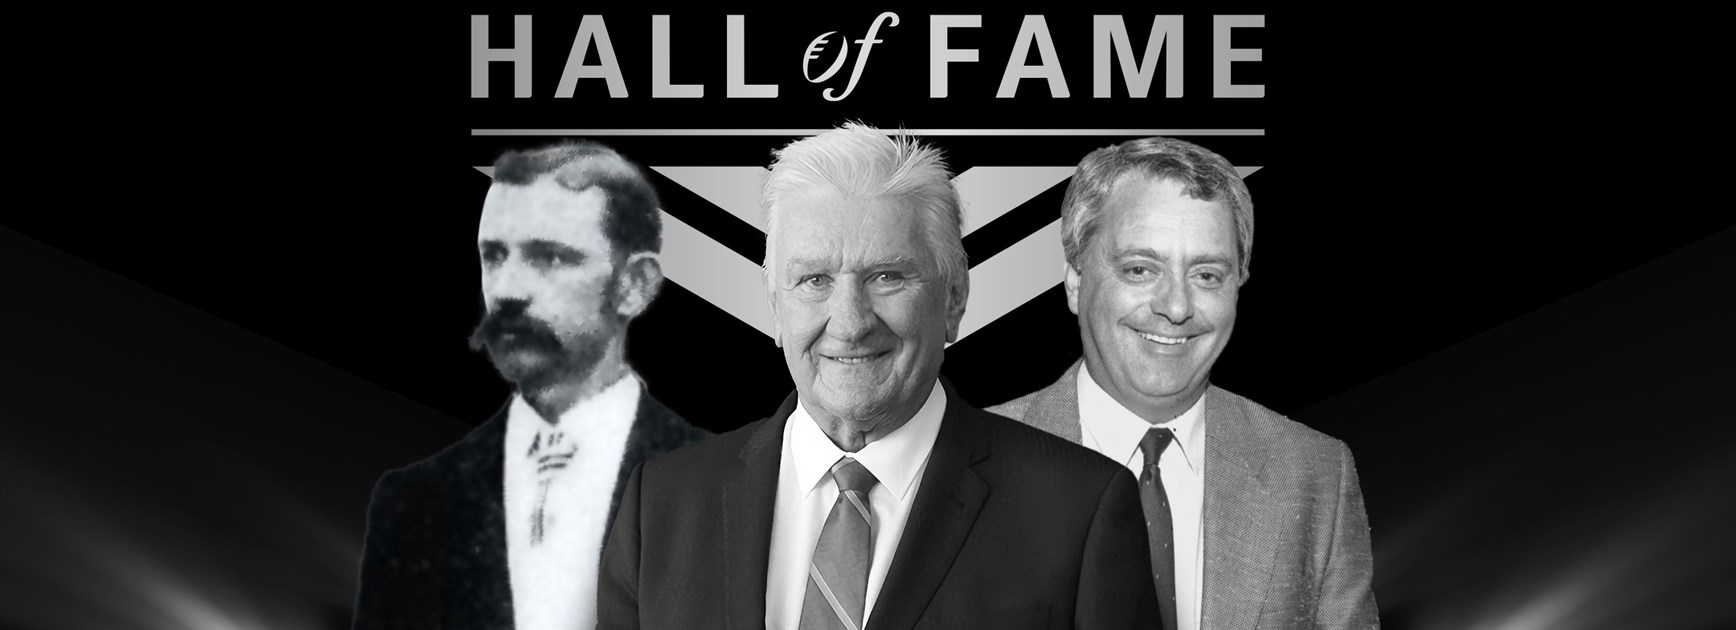 History made with three contributors added to Hall of Fame